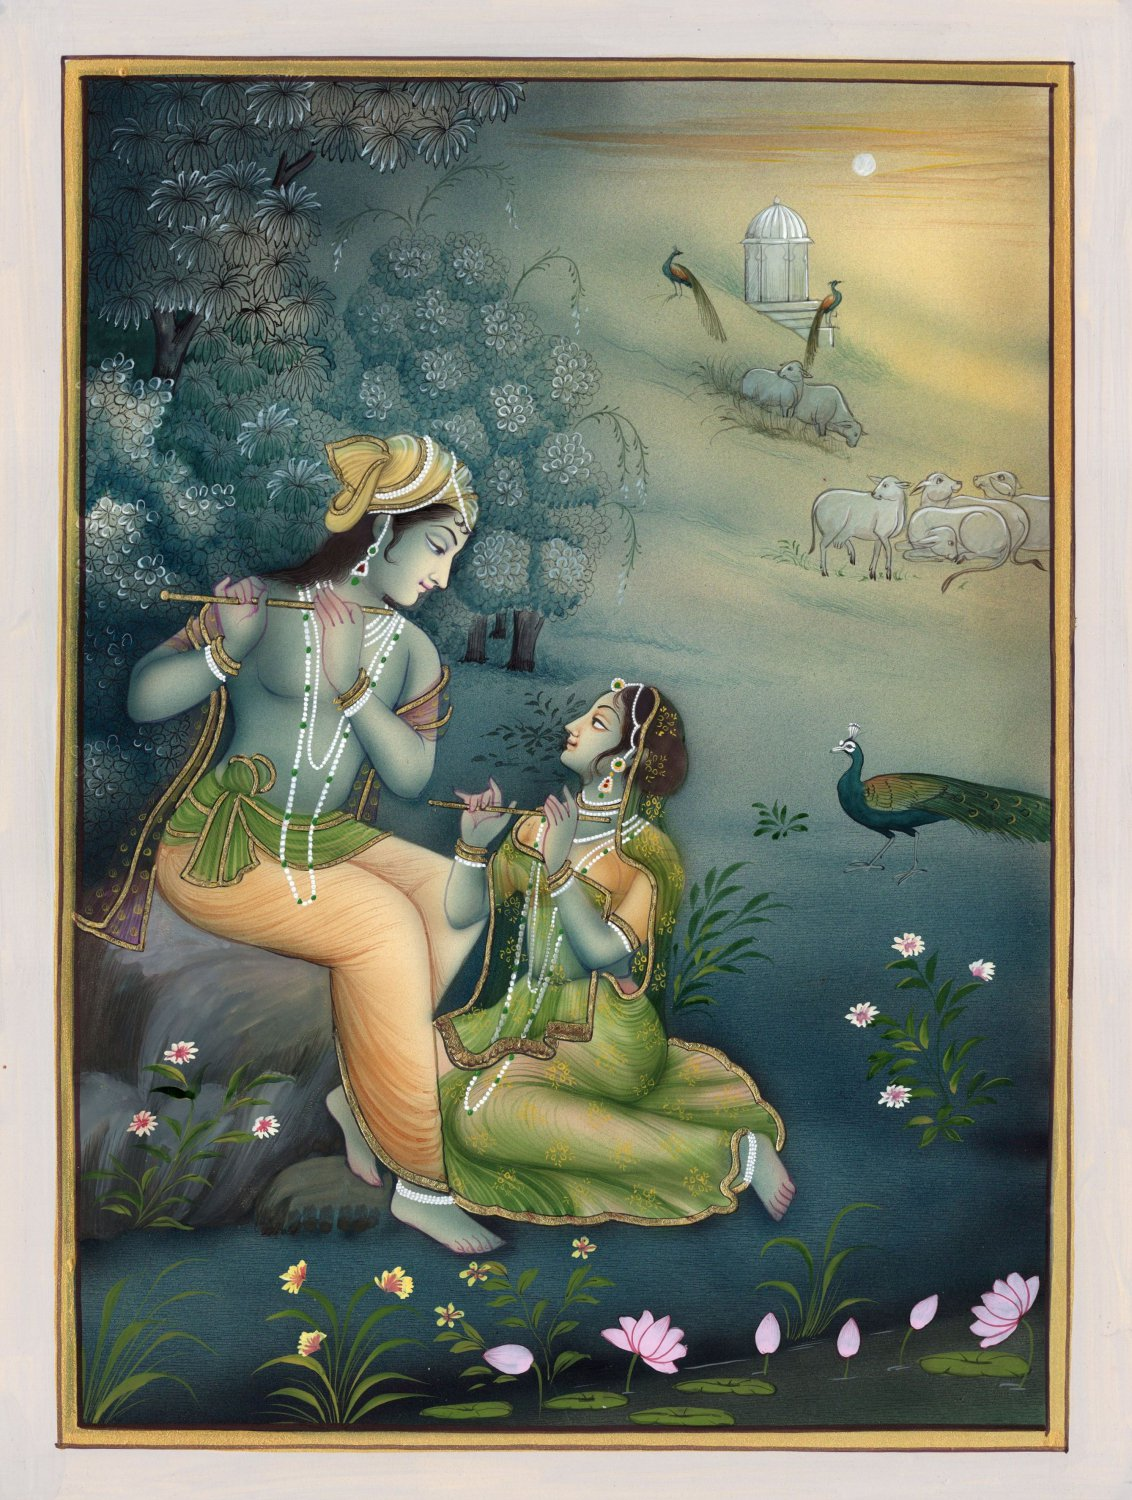 Krishna Radha Handpainted Image Indian Hindu Religious God Goddess Folk Artwork